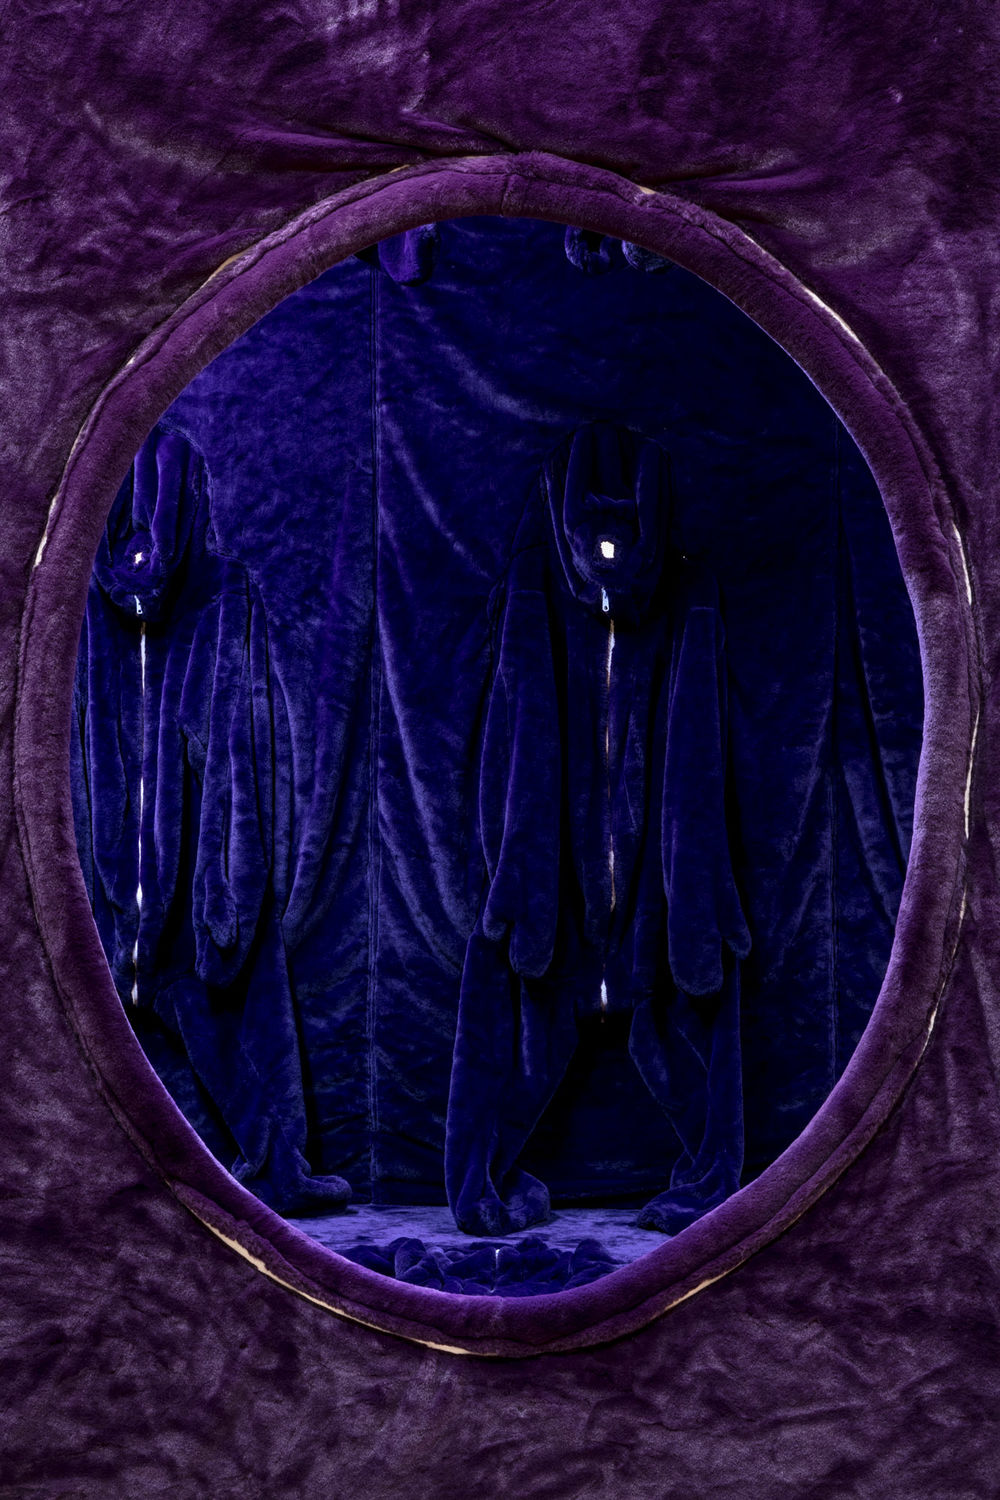 A vertical image shows a circular opening in a wall, looking into a chamber. The wall and chamber are covered in a purple velvet material.